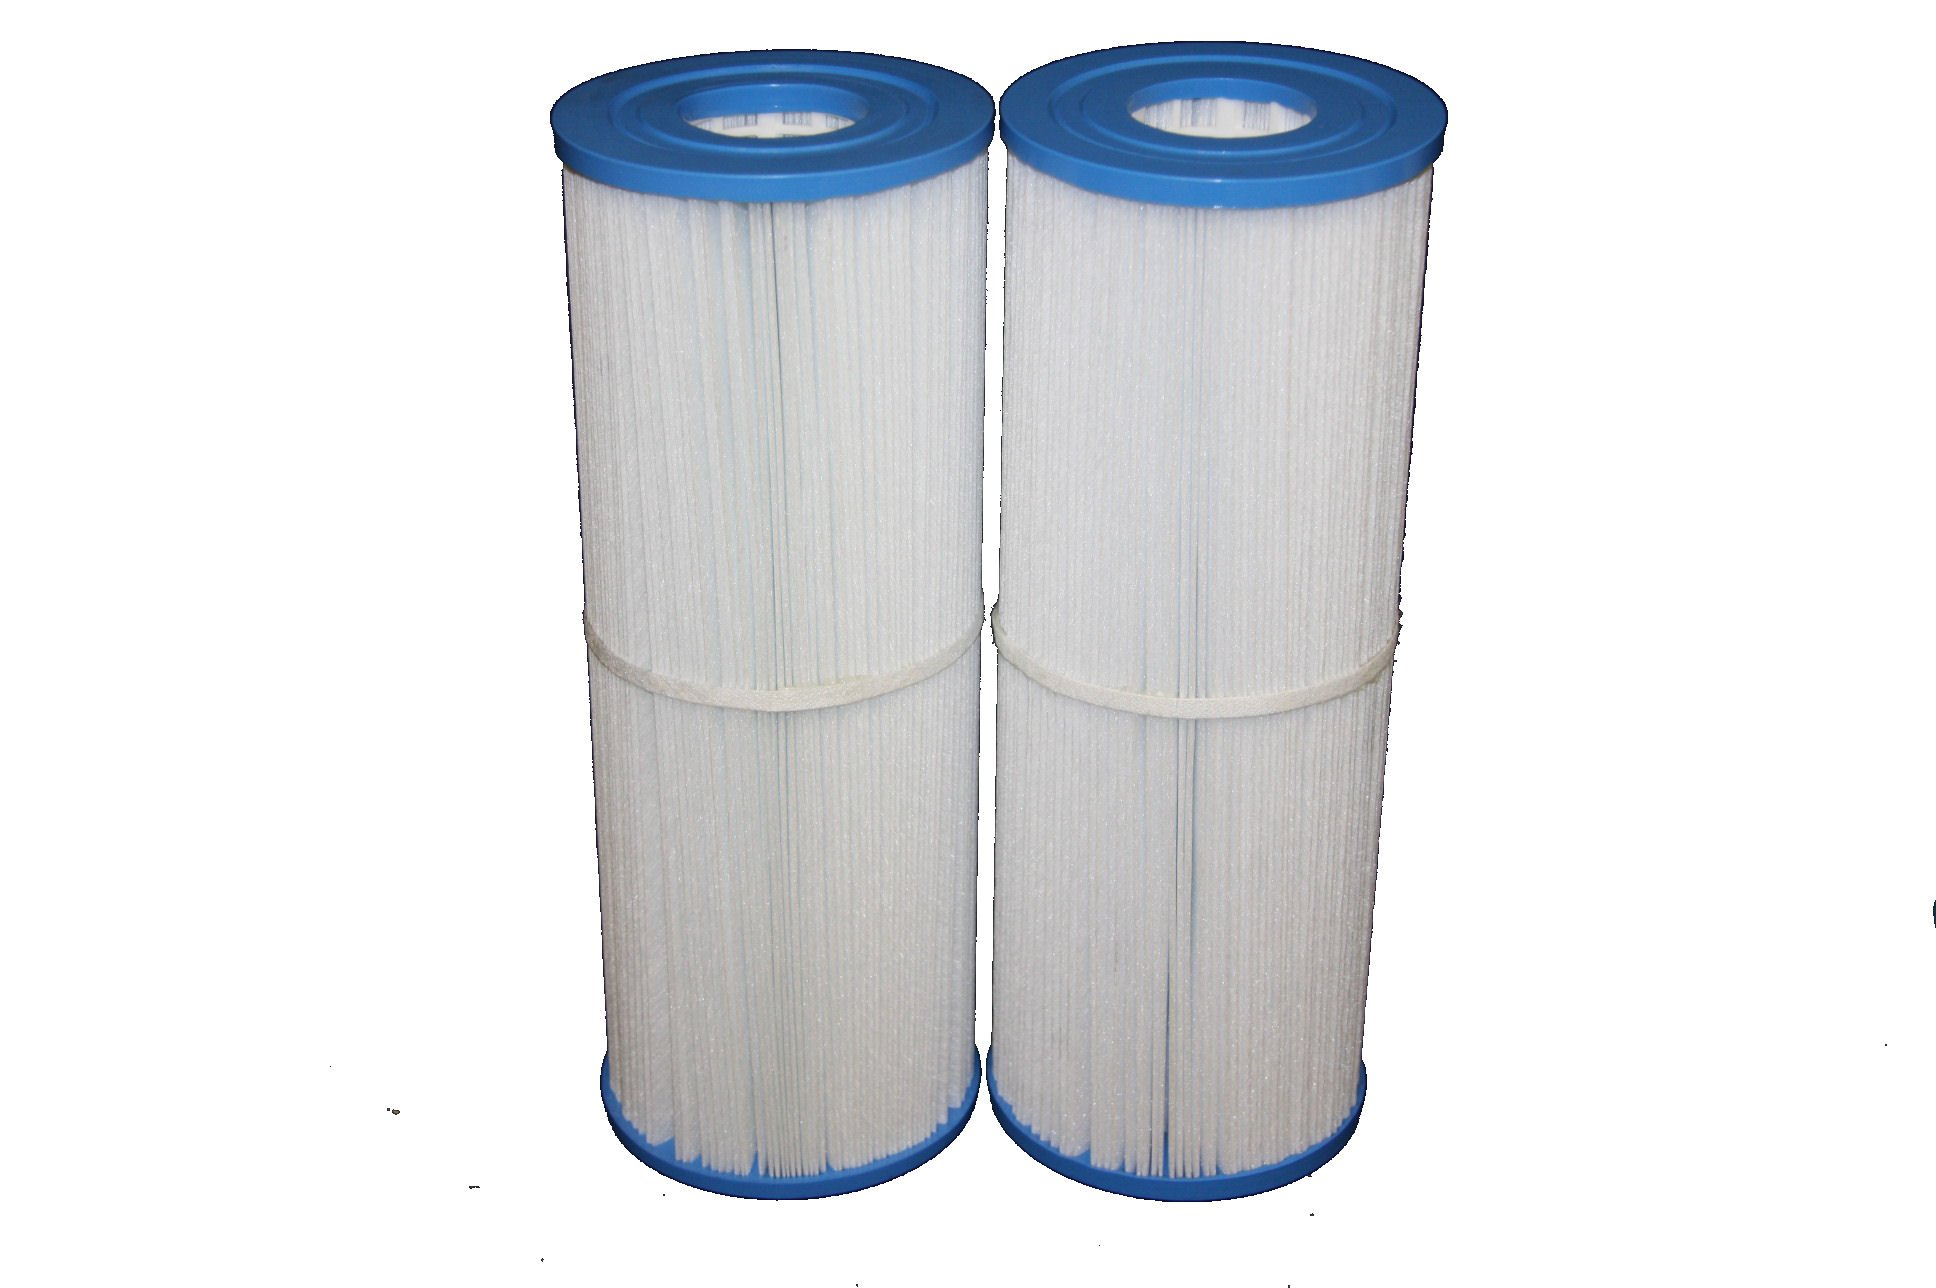 Guardian Filtration Products, Replacement Pool Spa Filter, for Unicel C-4326, Spa Filter FC2375, Pleatco PRB25, 2 Pack